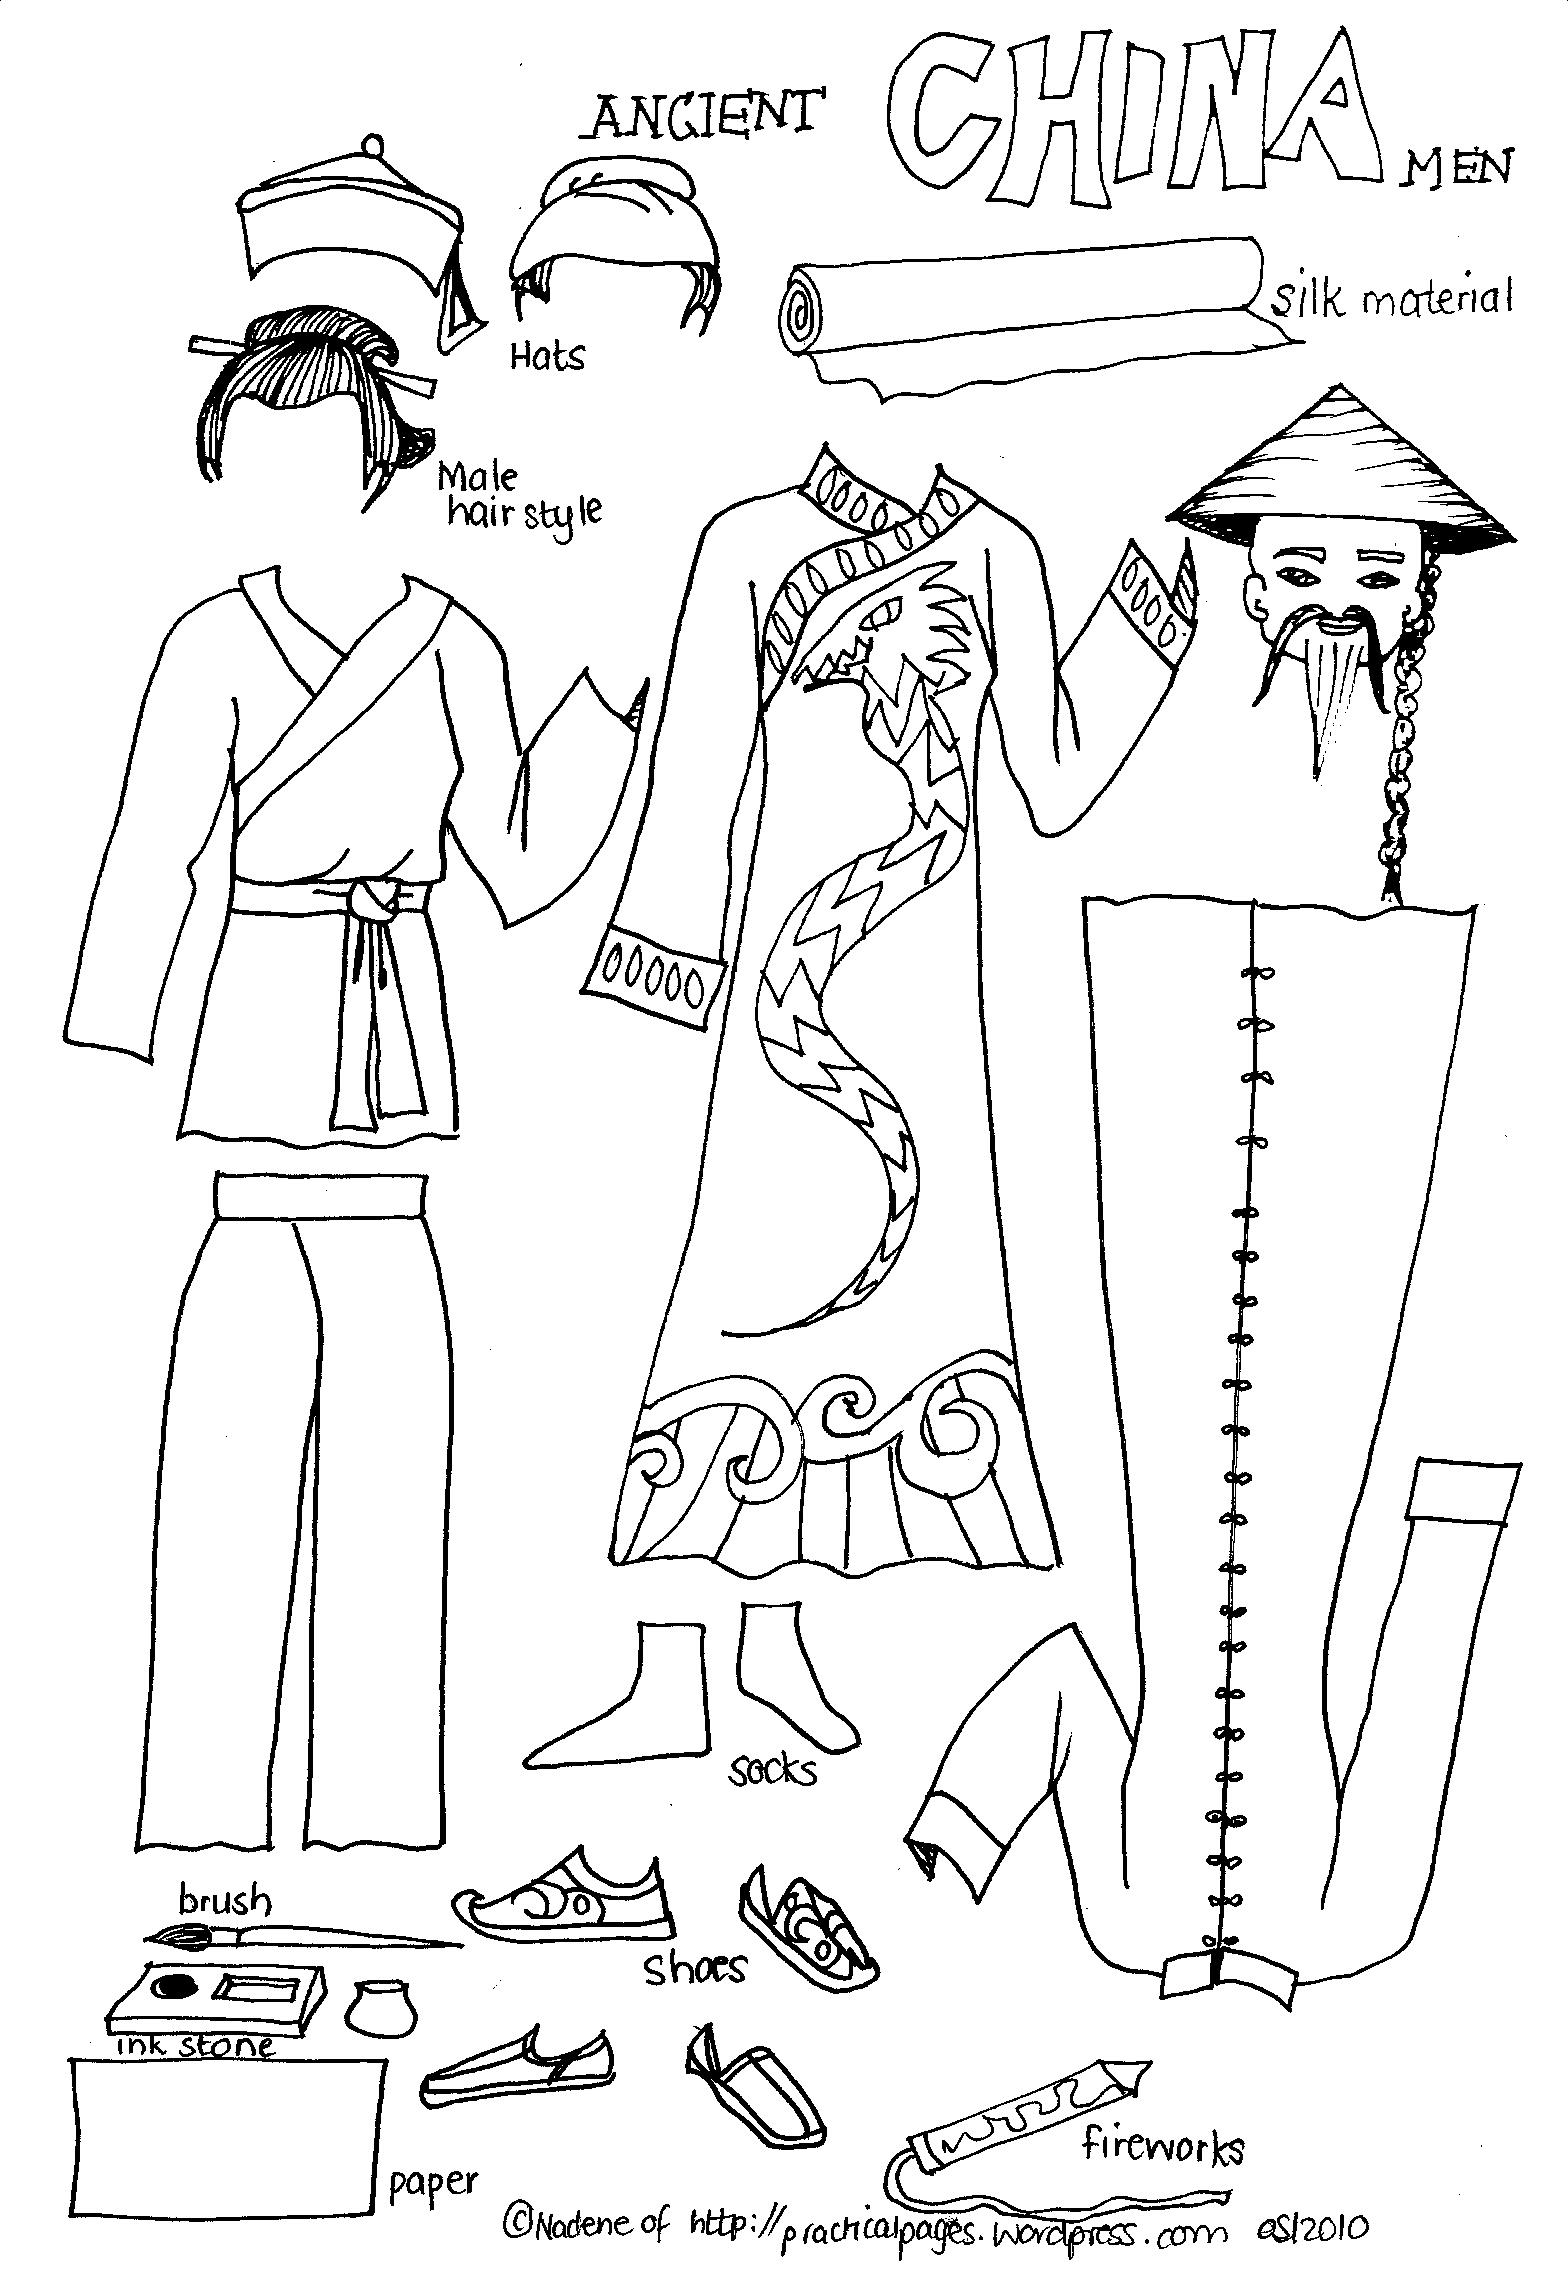 Worksheets Ancient China Worksheets paper men of ancient history practical pages click